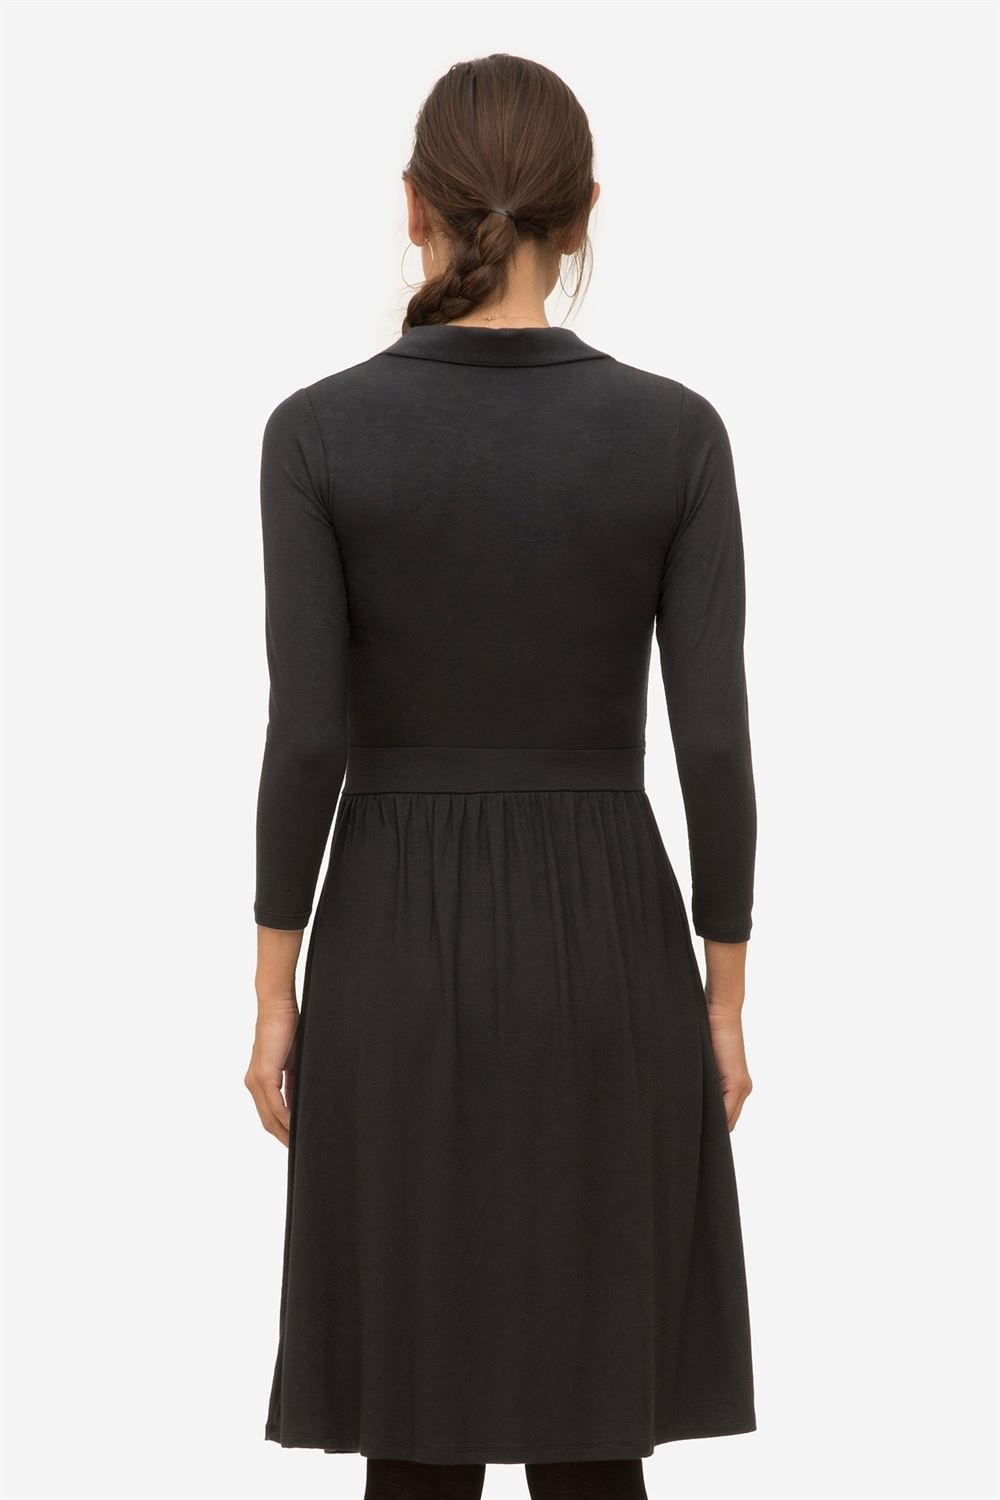 Black nursing dress with a stylish shirt-collar - Seen from behind